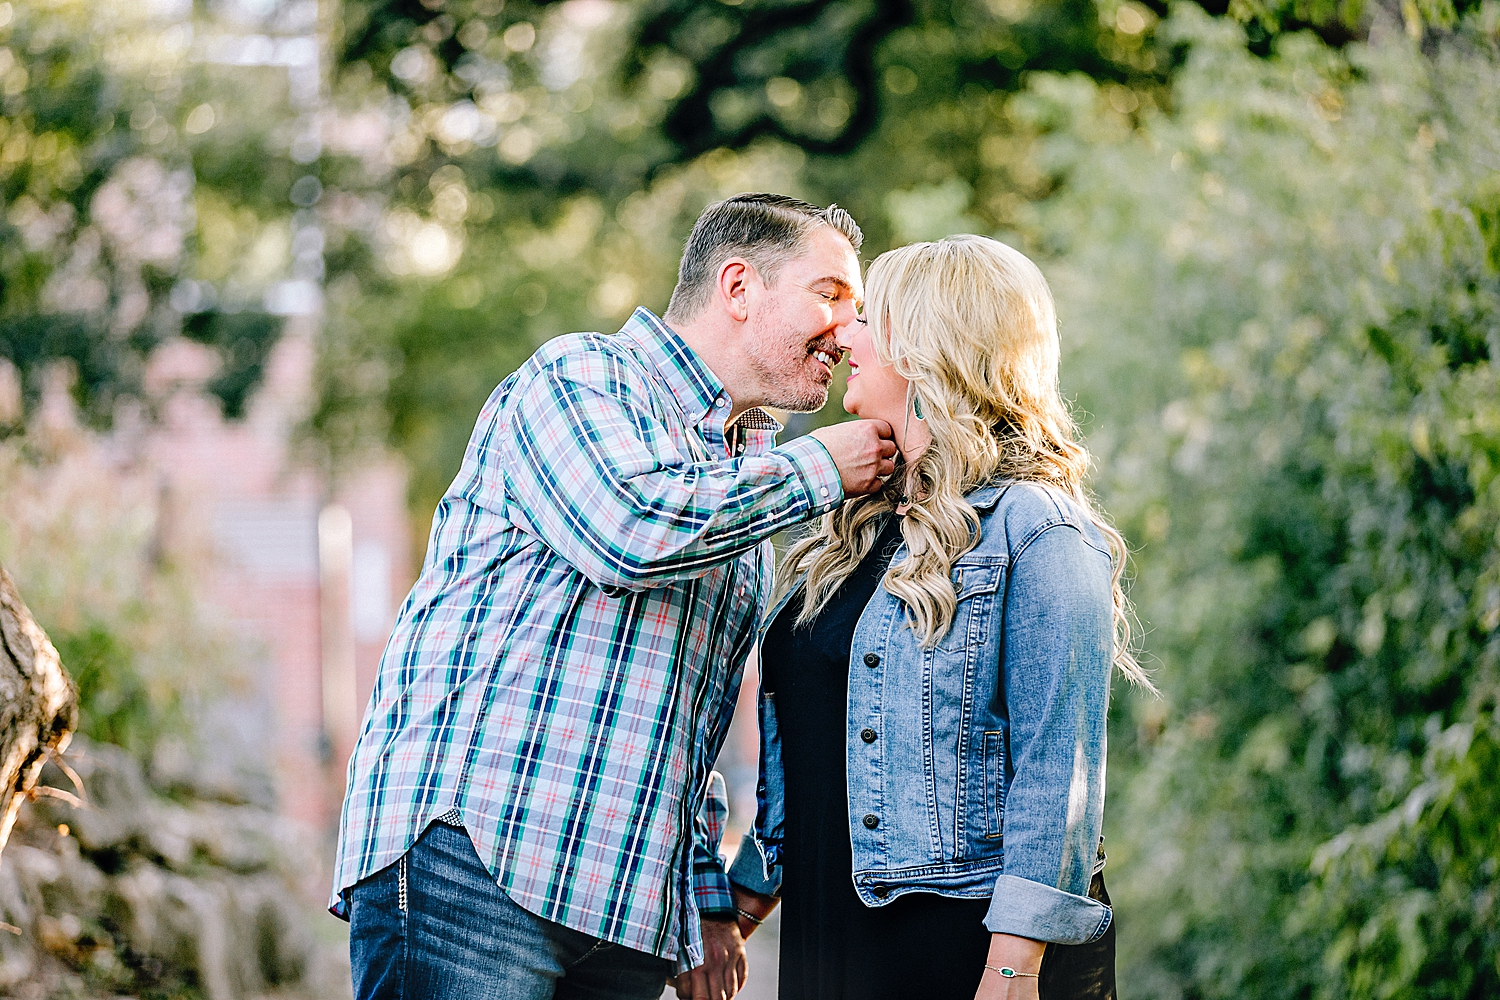 Engagement-Photo-Session-University-of-Incarnate-Word-UIW-San-Antonio-Texas-Carly-Barton-Photography_0016.jpg